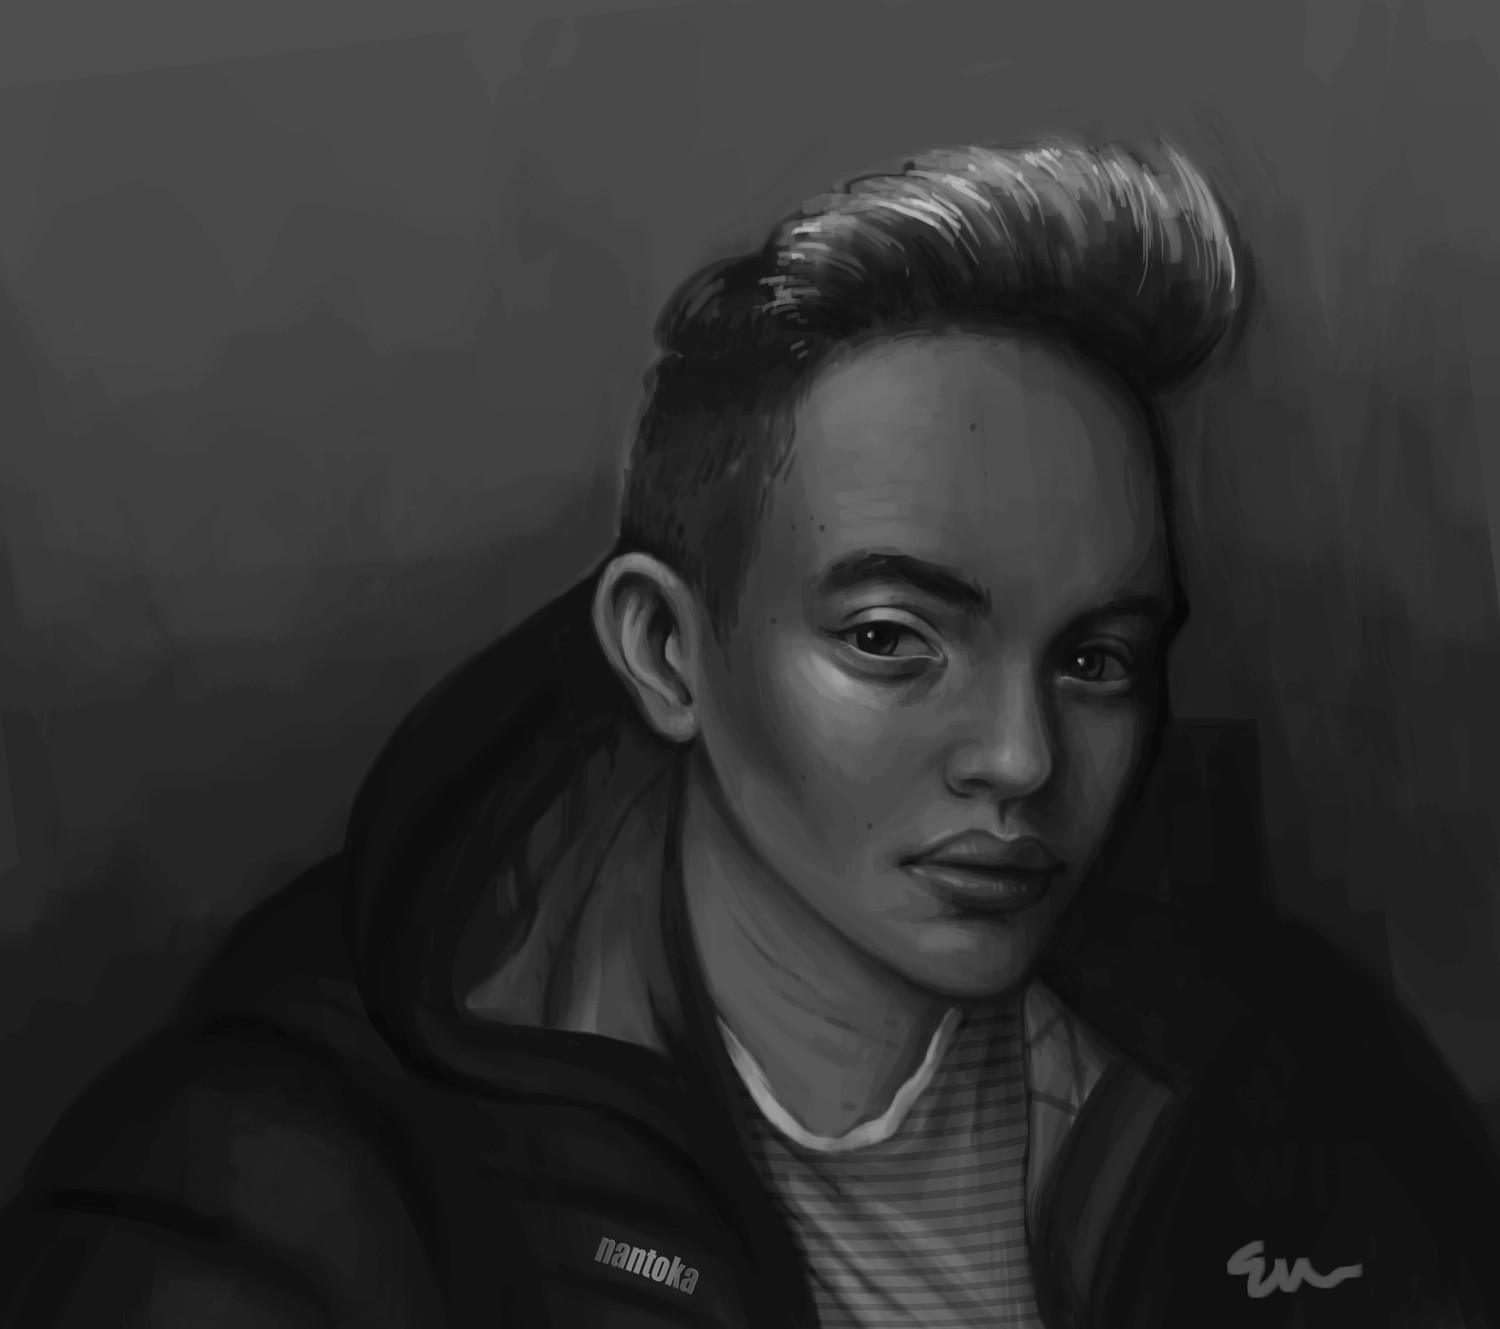 Portrait of my friend for some palate cleansing painting and playing with values!